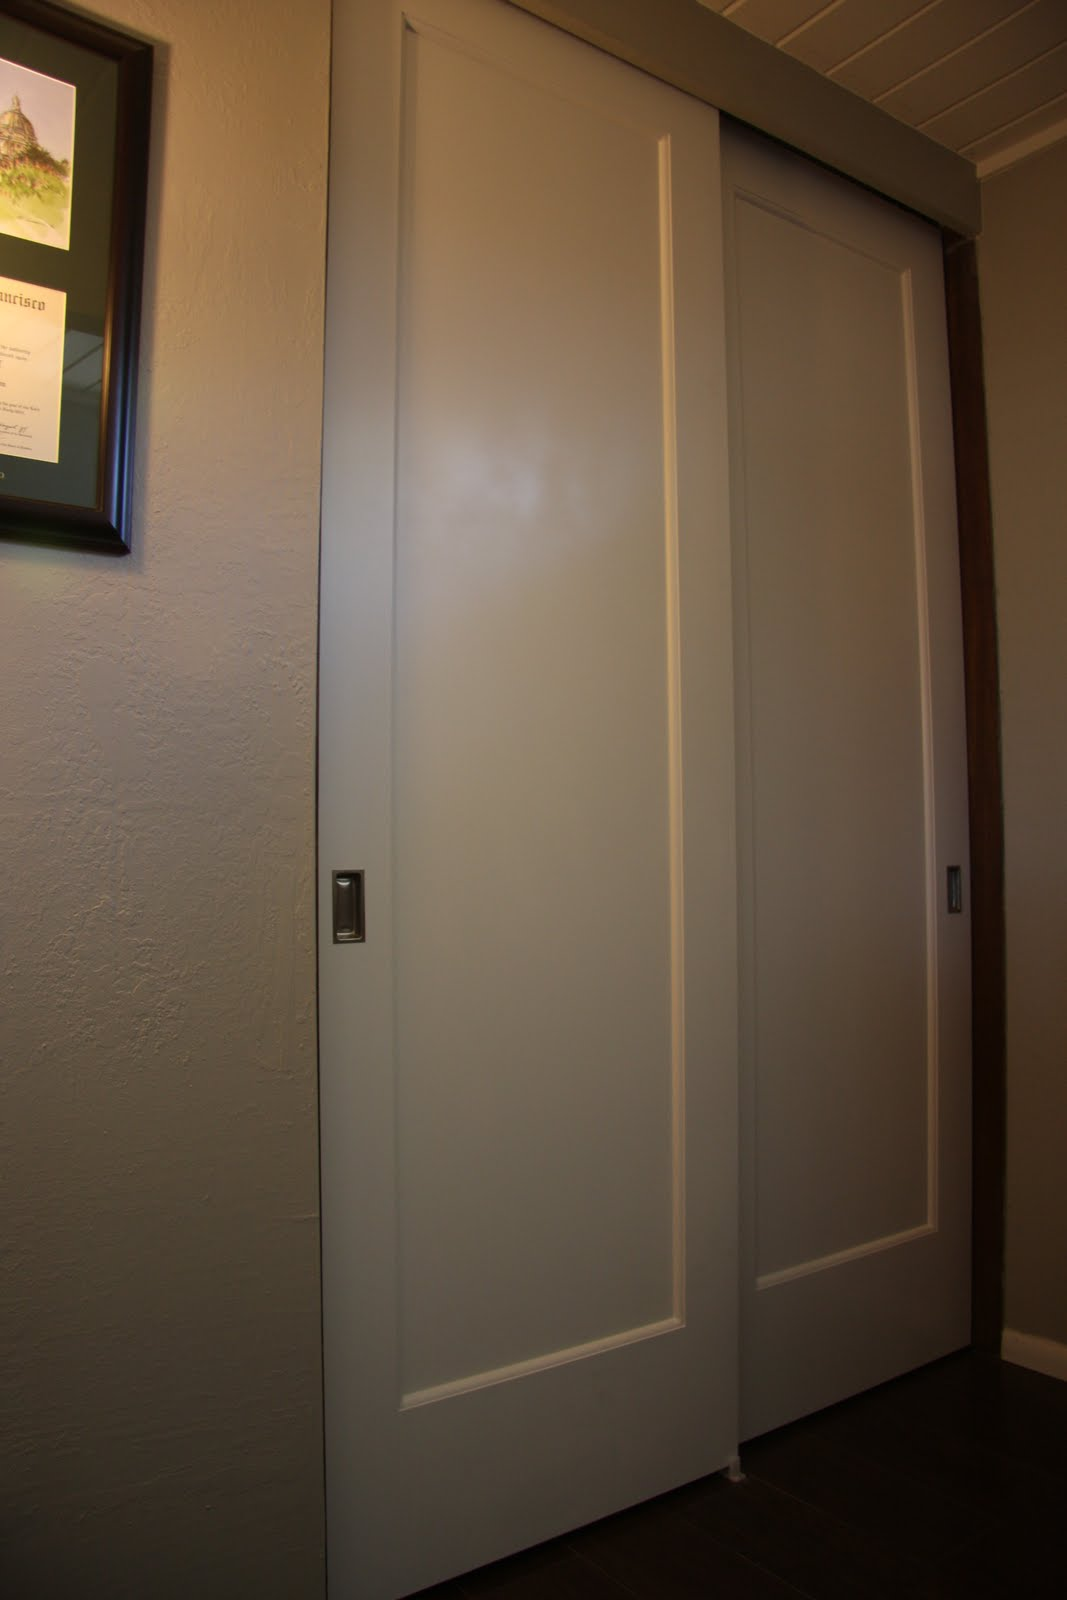 Home Depot Your Home Improvements Refference Closet Mirror Doors Home - 6158 the guest bedroom doors with the same entrance door for reference snapshot of shoji